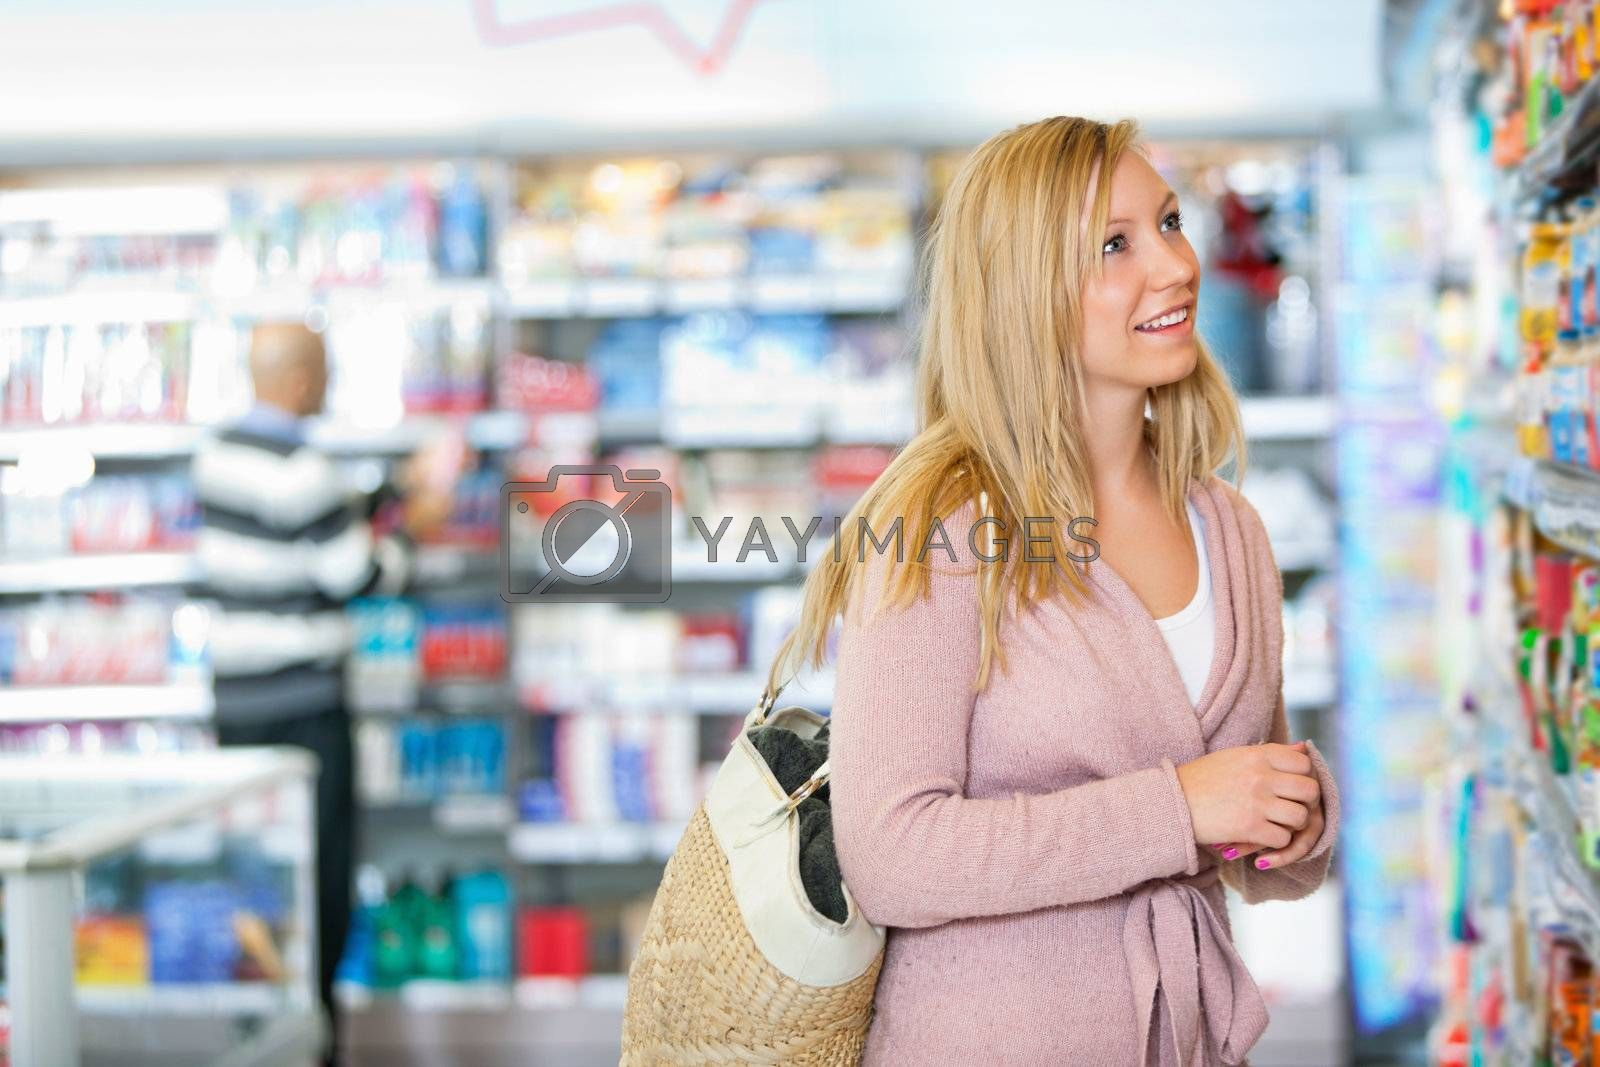 Young woman smiling while looking at goods in the supermarket with people in the background